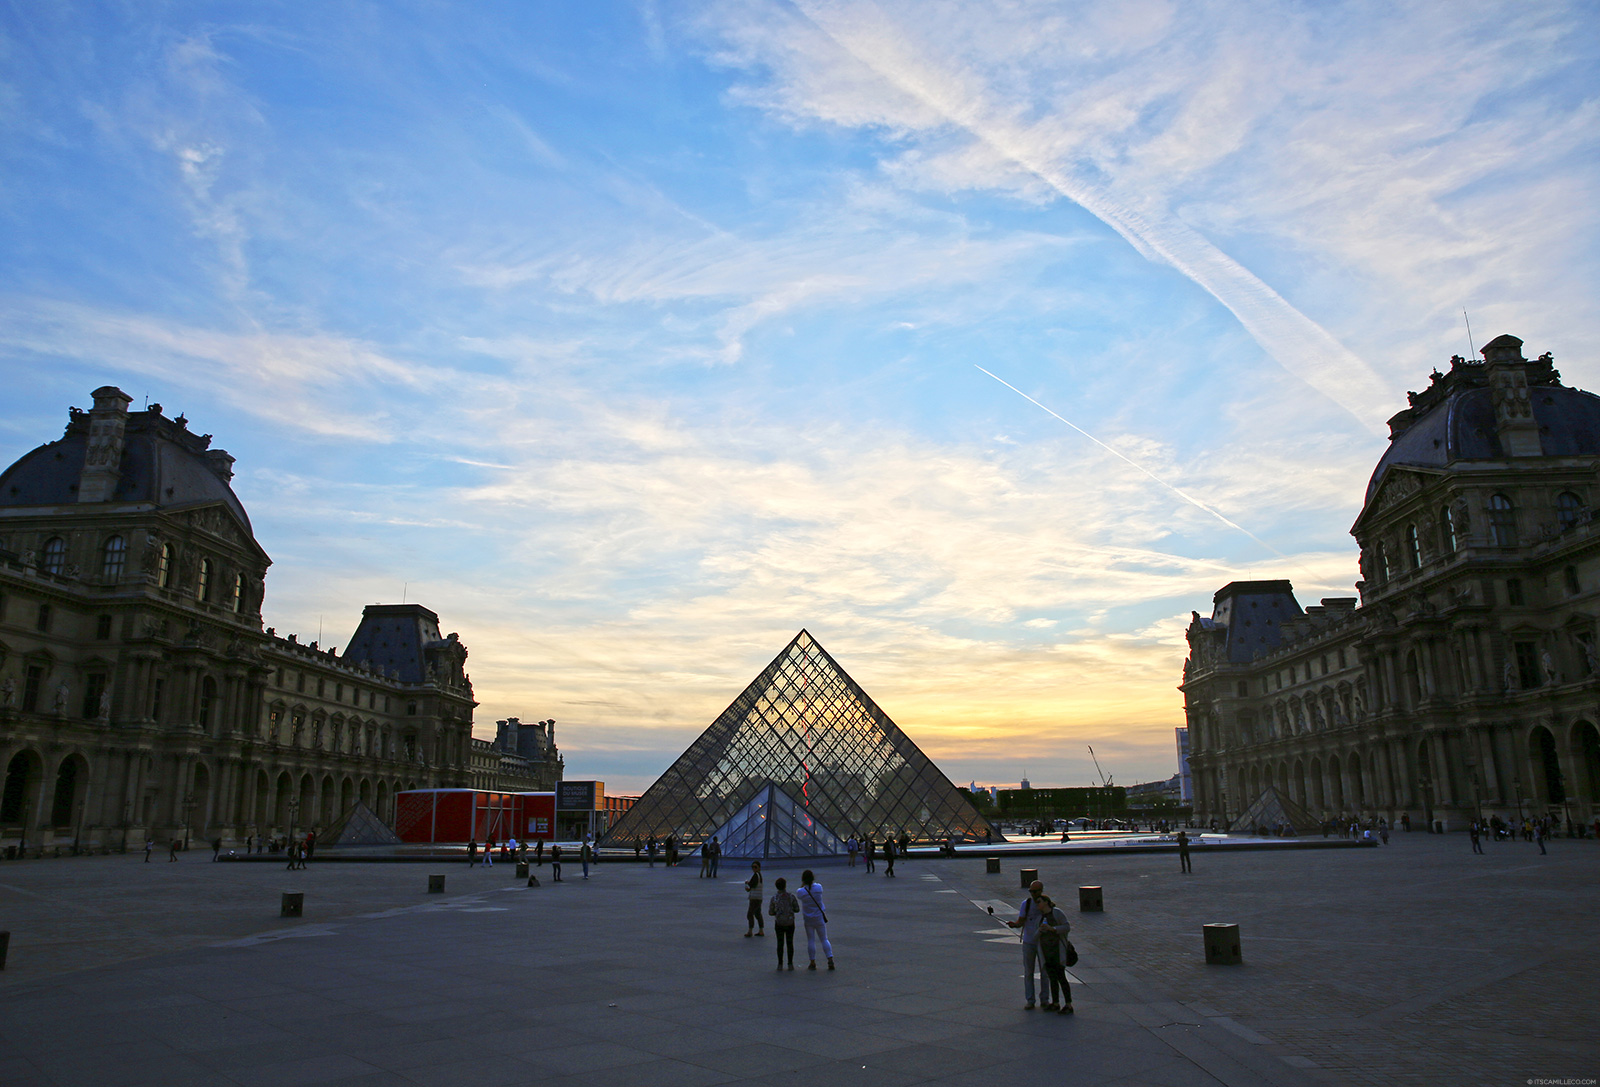 Paris With Kids - The best family tours, attractions, day trips, and historical sites. Kid-friendly shows and events for families.